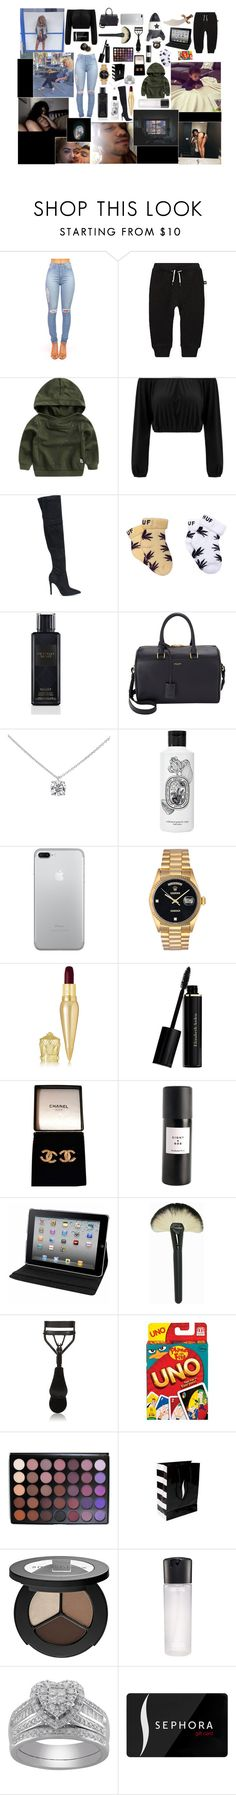 """""""•I can't sleep without you anymore at night time ,Not in this lifetime"""" by vibes-xo ❤ liked on Polyvore featuring xO Design, Molo, Kendall + Kylie, Victoria's Secret, Yves Saint Laurent, Tiffany & Co., Diptyque, Rolex, Christian Louboutin and Elizabeth Arden"""